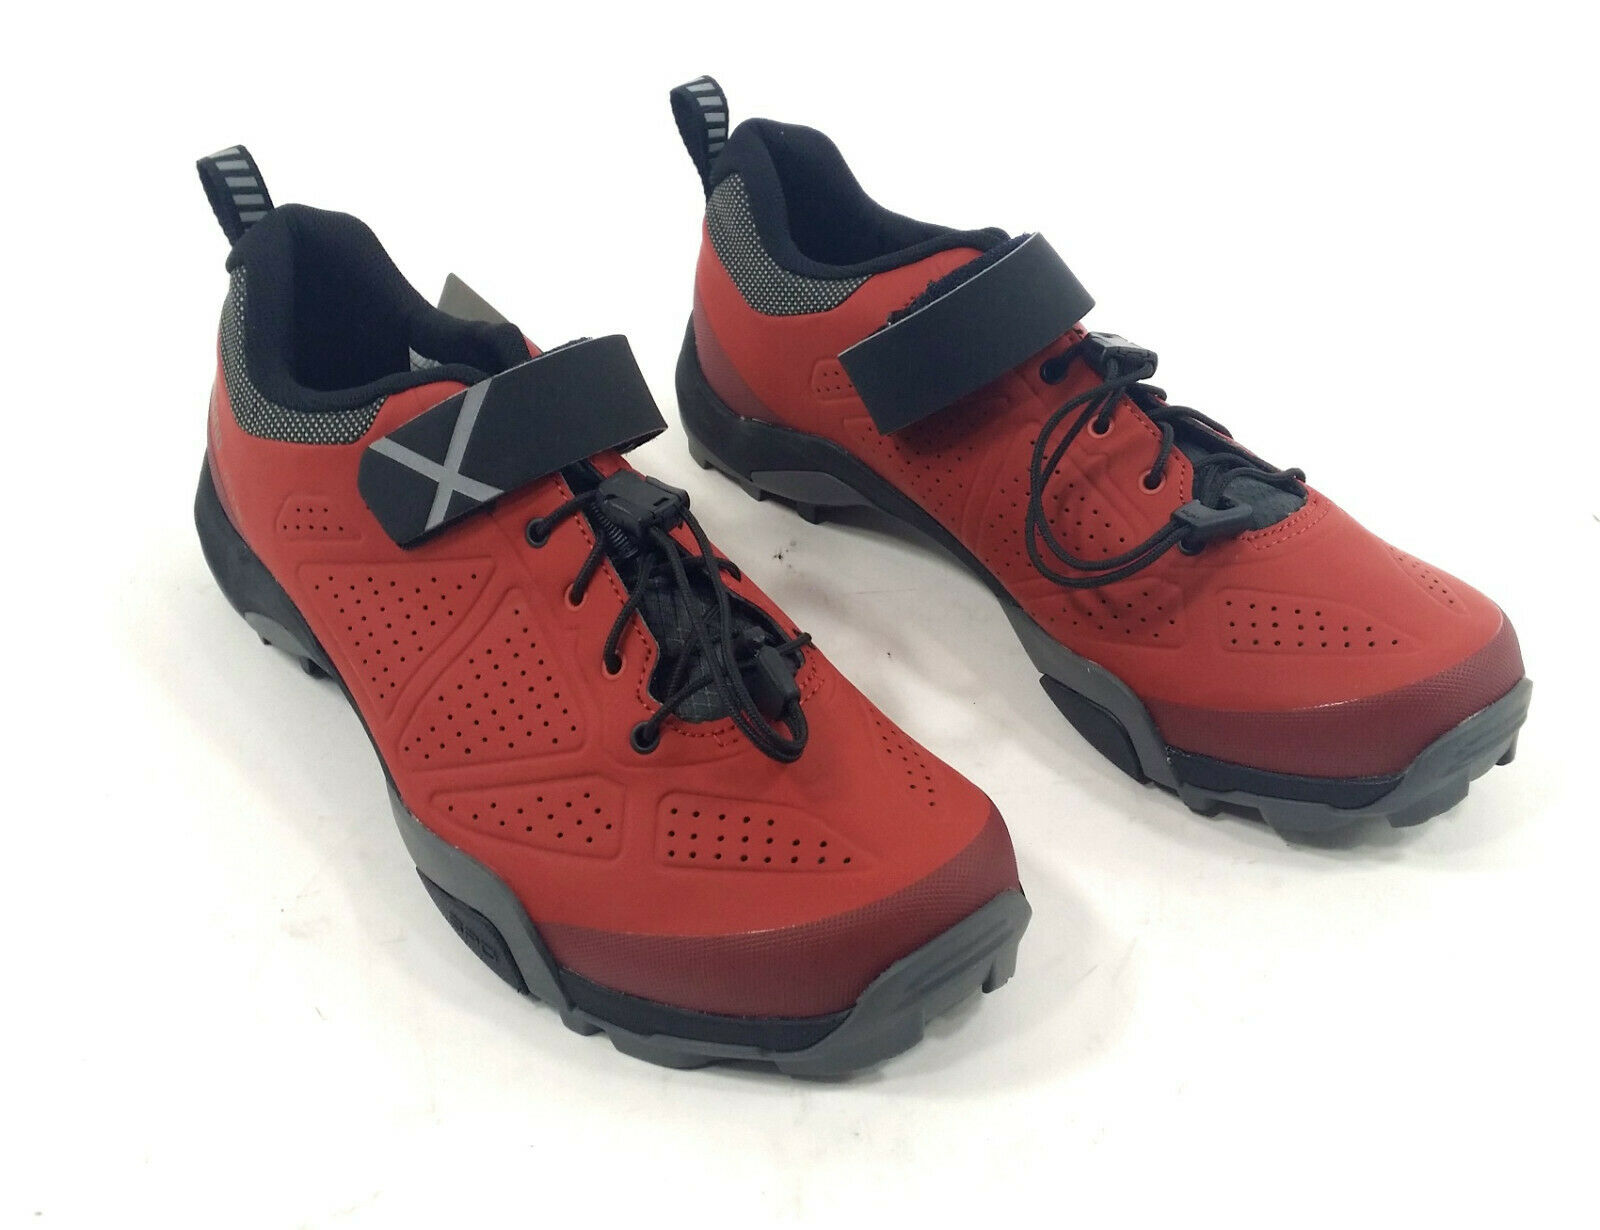 Shimano SH-MT5 Mountain Bike shoes, Red - Men's 8.9 ()